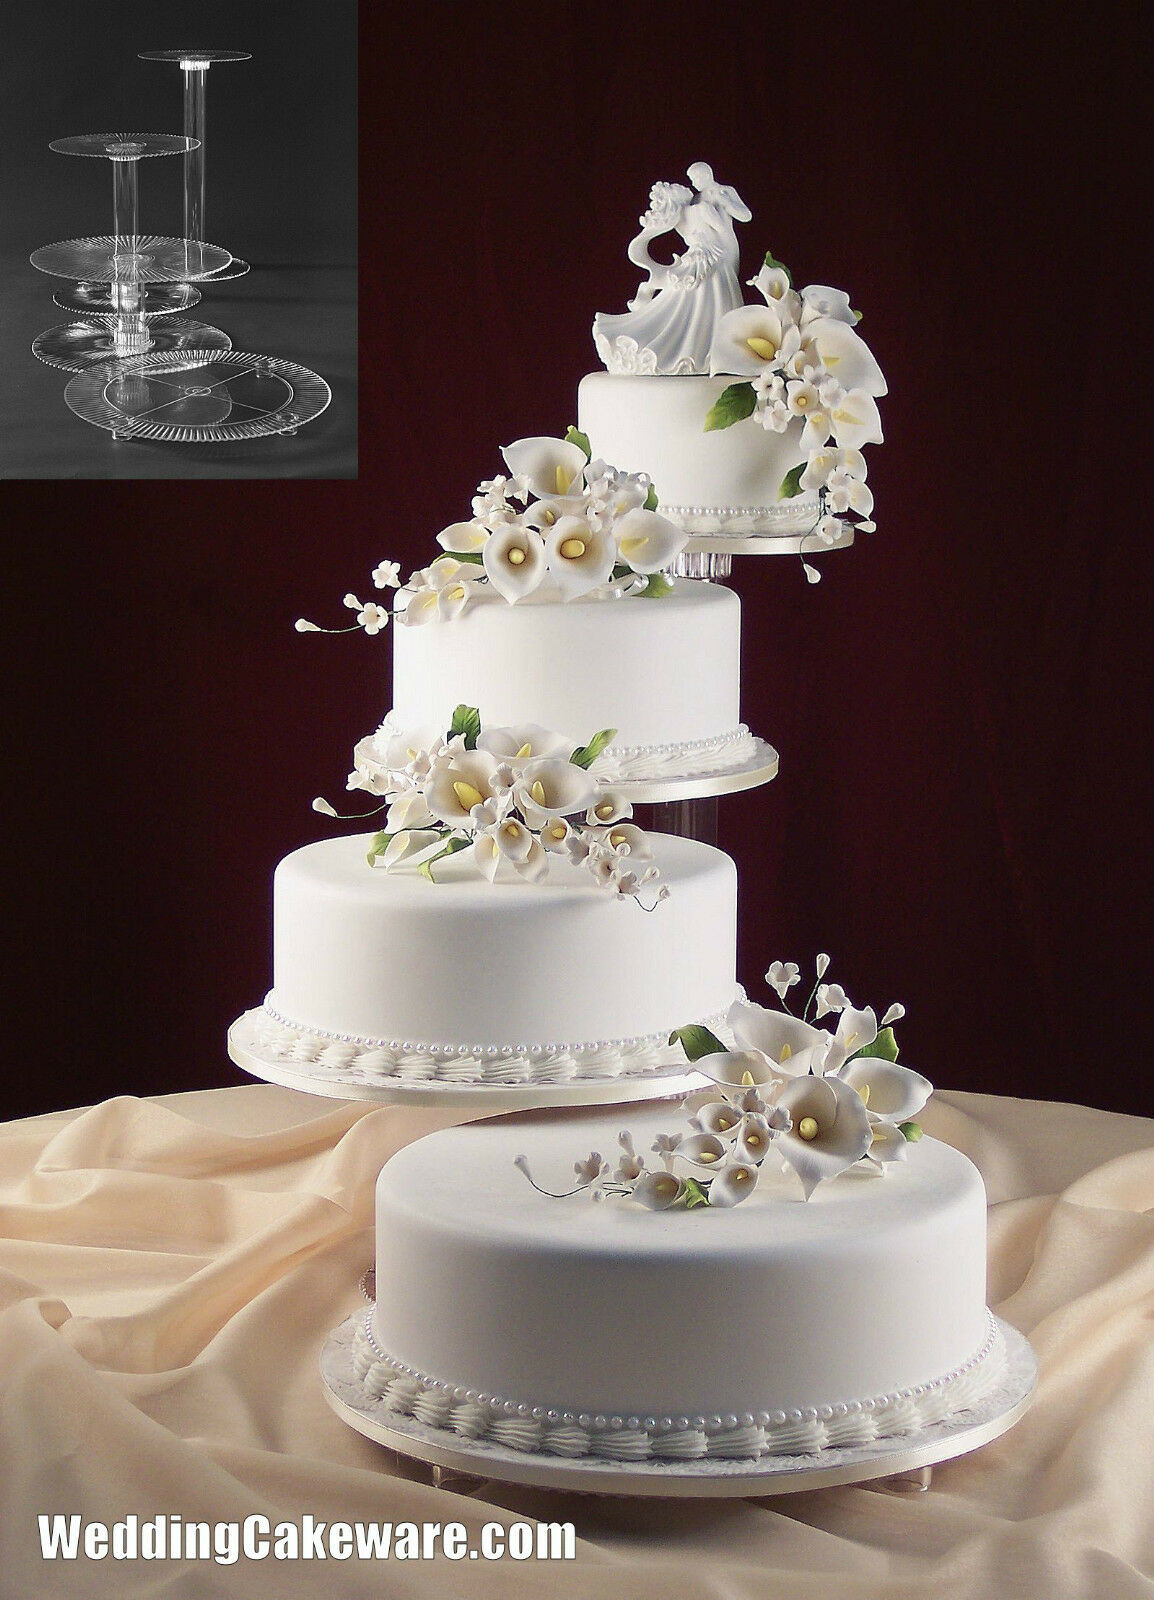 Cake Stands For Wedding Cakes  Wedding Cakes Stands Bling Wedding Cake Stand Drum 18